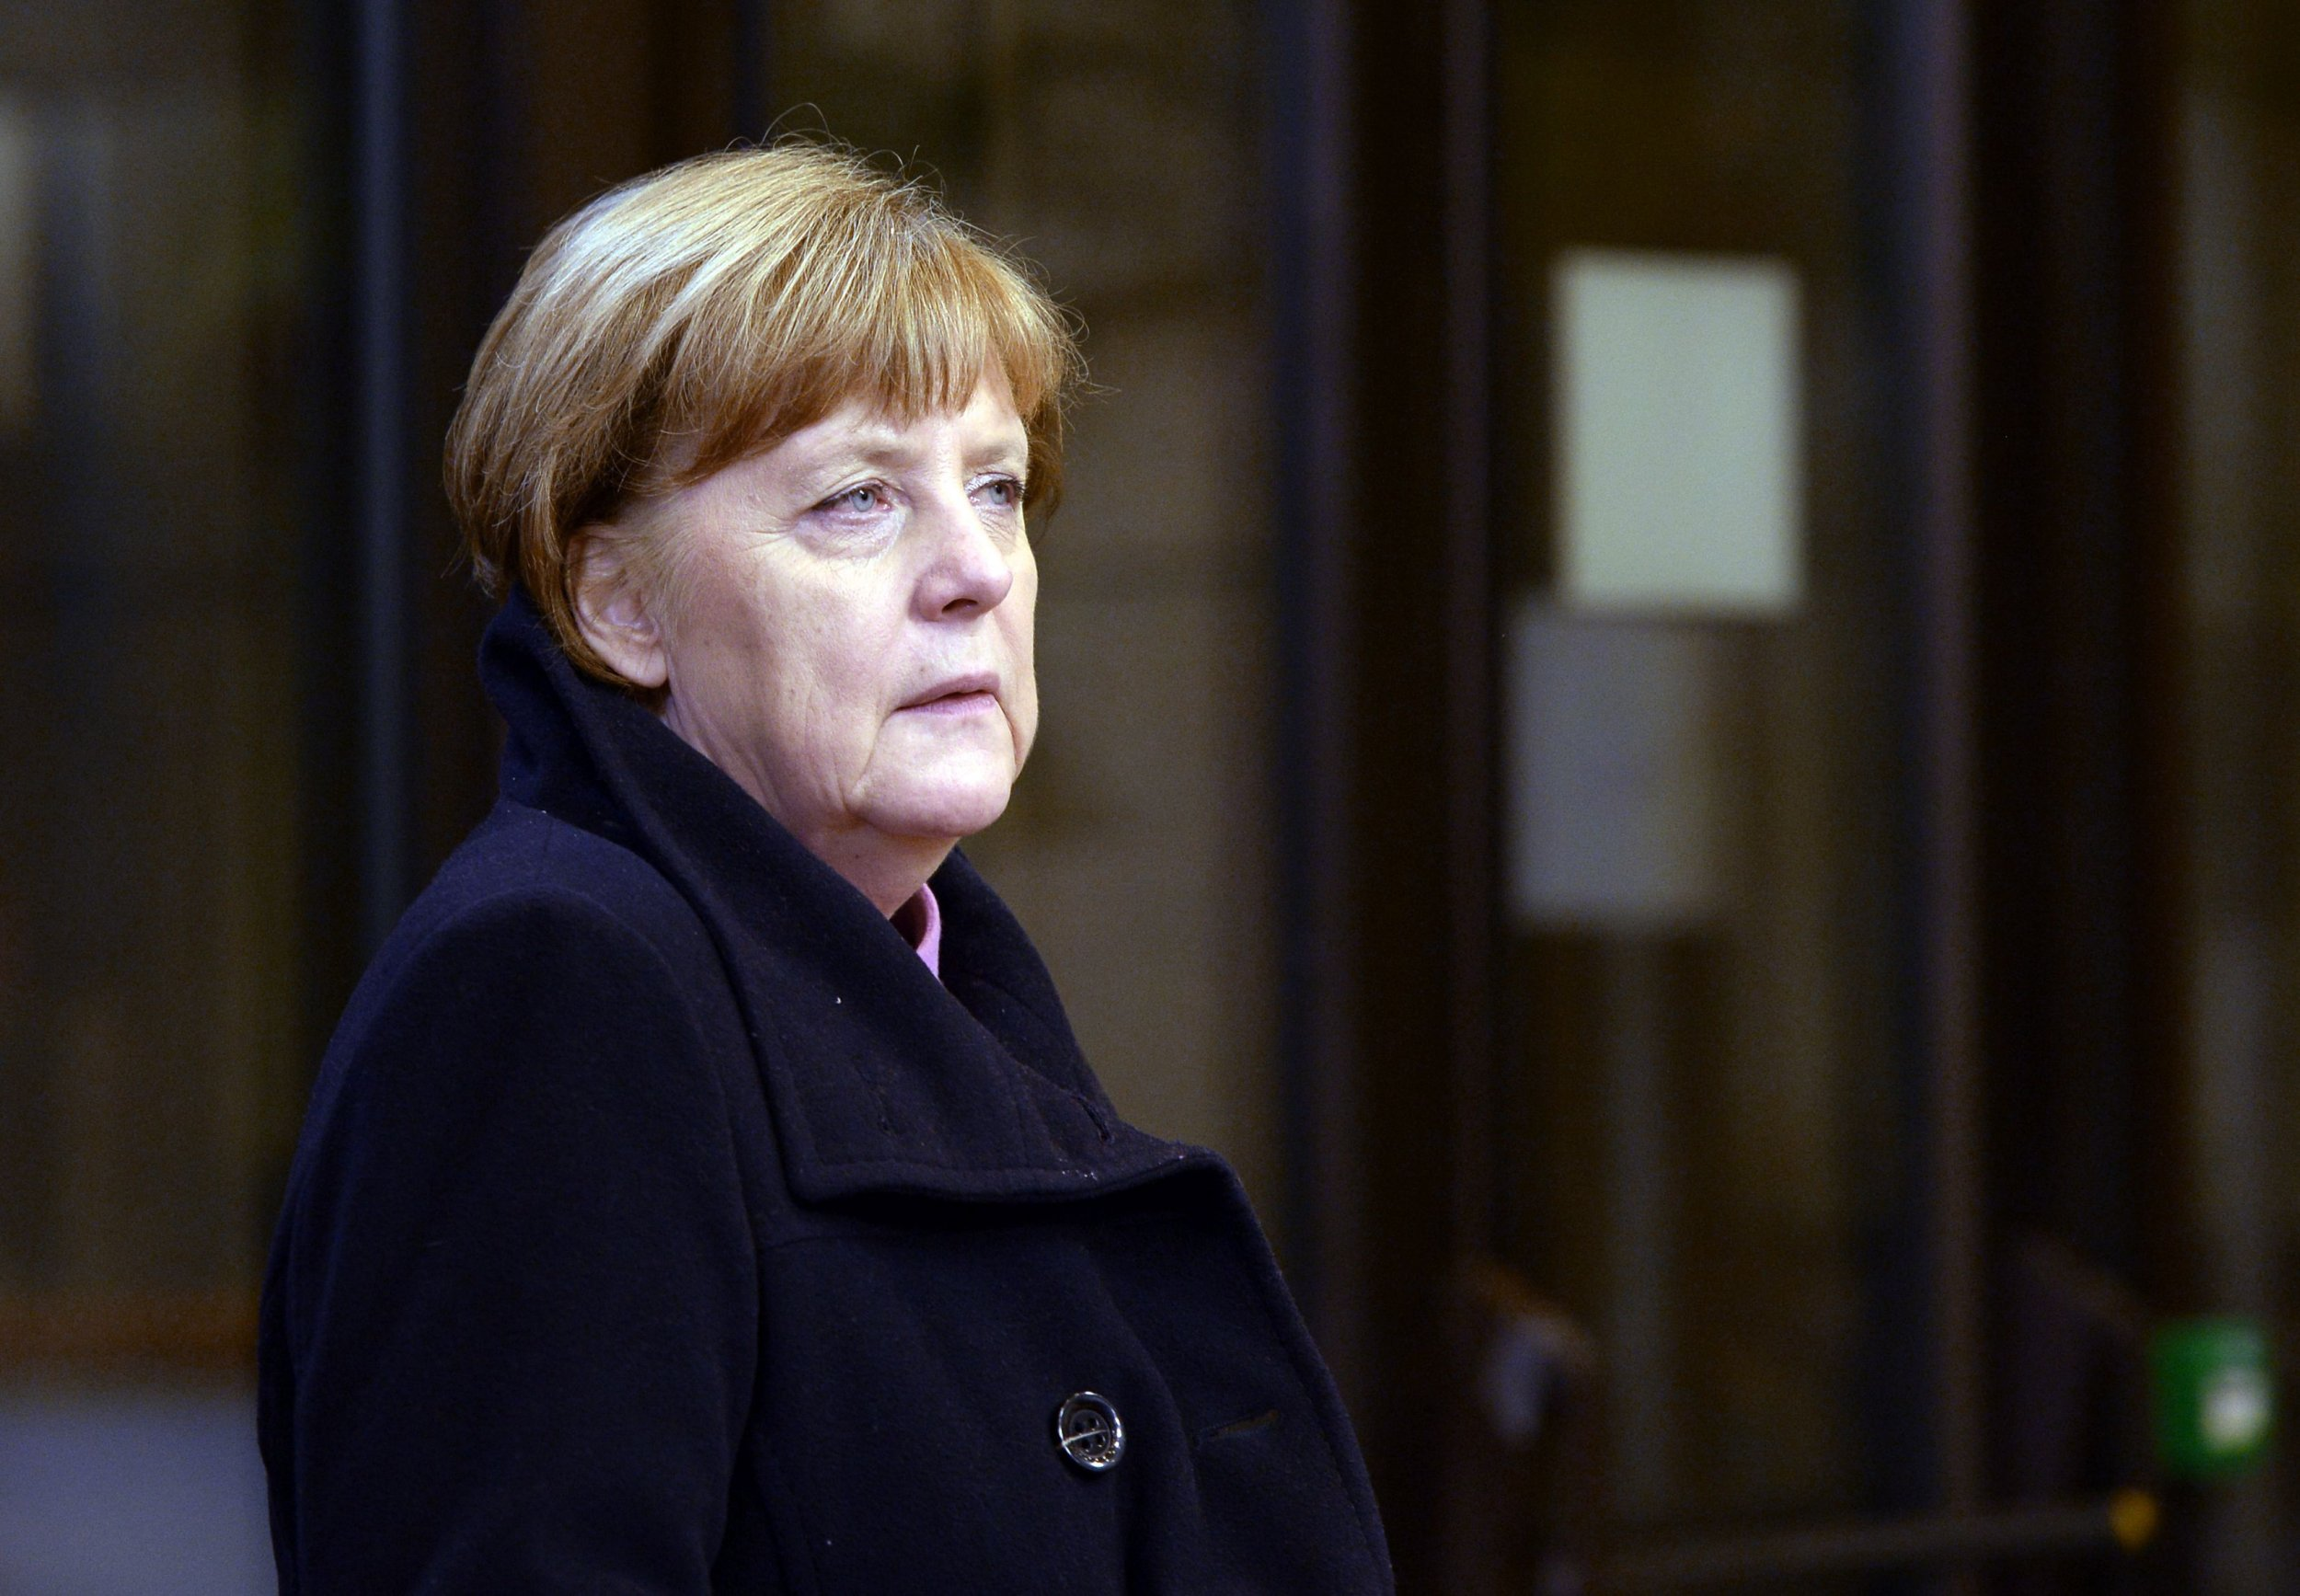 German Federal Chancellor Angela Merkel arrives at the European Union Council building to attend the working dinner of the European Summit in Brussels February 19, 2016. British Prime Minister David Cameron haggled with European leaders deep into a second night of summit talks on Friday, facing tough resistance to his bid for a reform deal to keep his country in the EU. / AFP / THIERRY CHARLIERTHIERRY CHARLIER/AFP/Getty Images